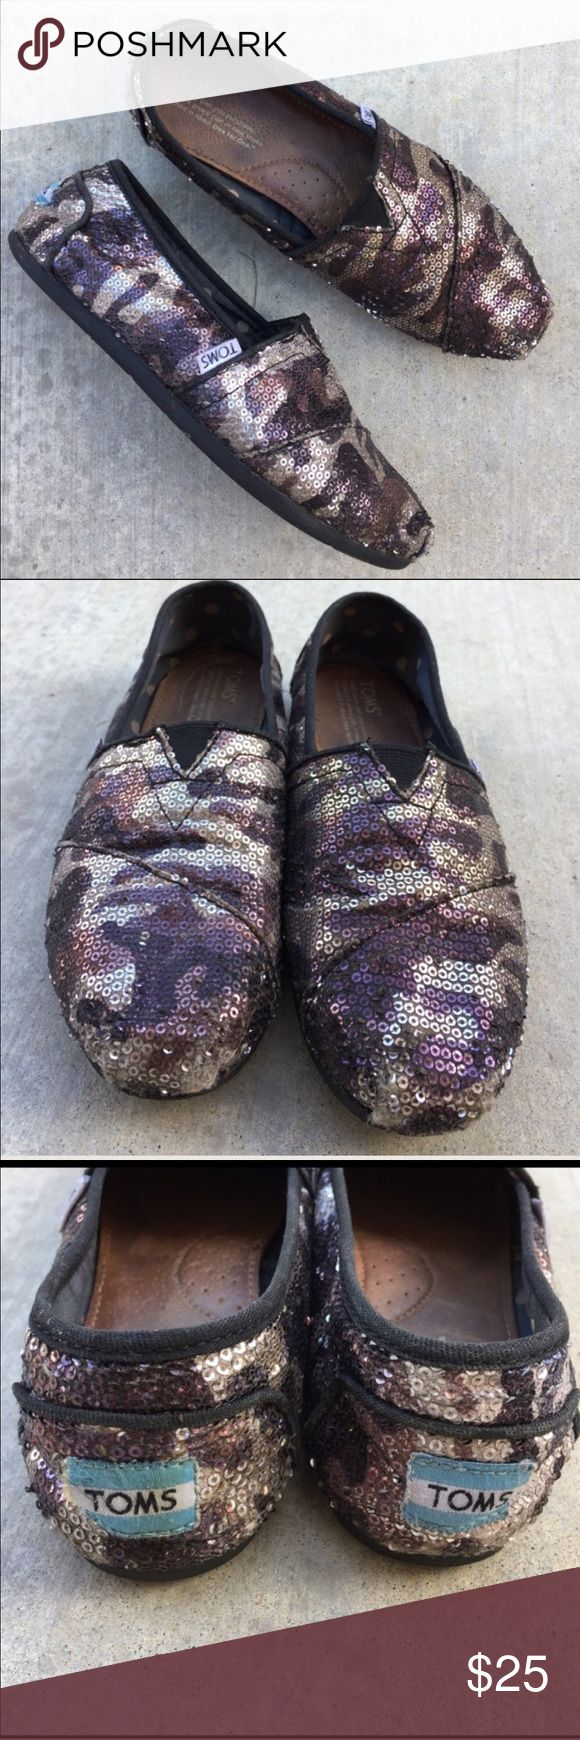 TOMS purple Camo & sequins shoes Gently worn , size 7, some missing sequins in front toe area and back heel , not noticeable 🌟MAkE A REASONABLE OFFER🌟 TOMS Shoes